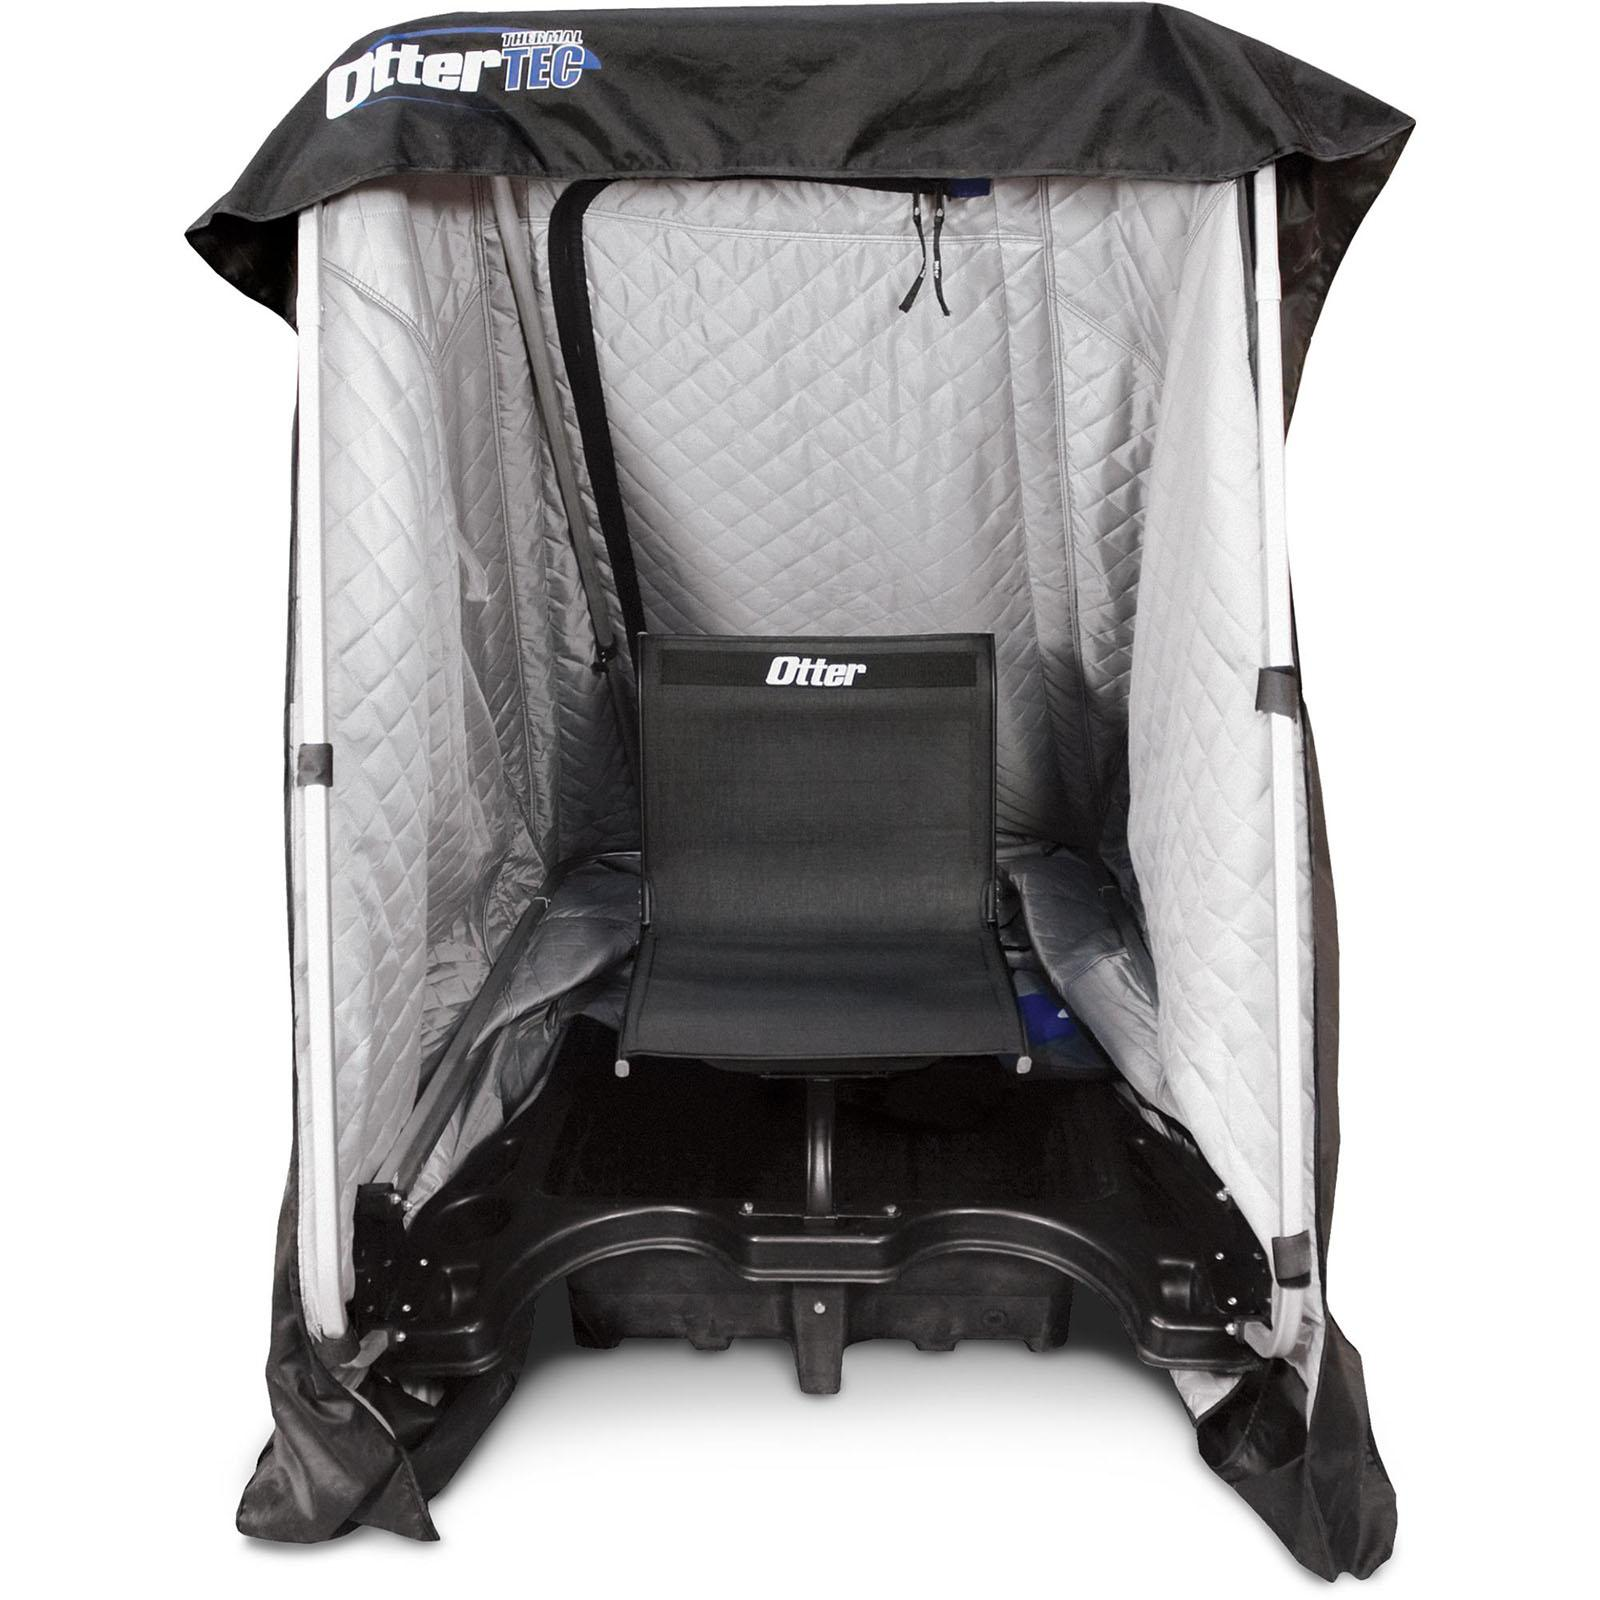 Inside Seating View - Otter Outdoors XT Hideout Ice Shelter